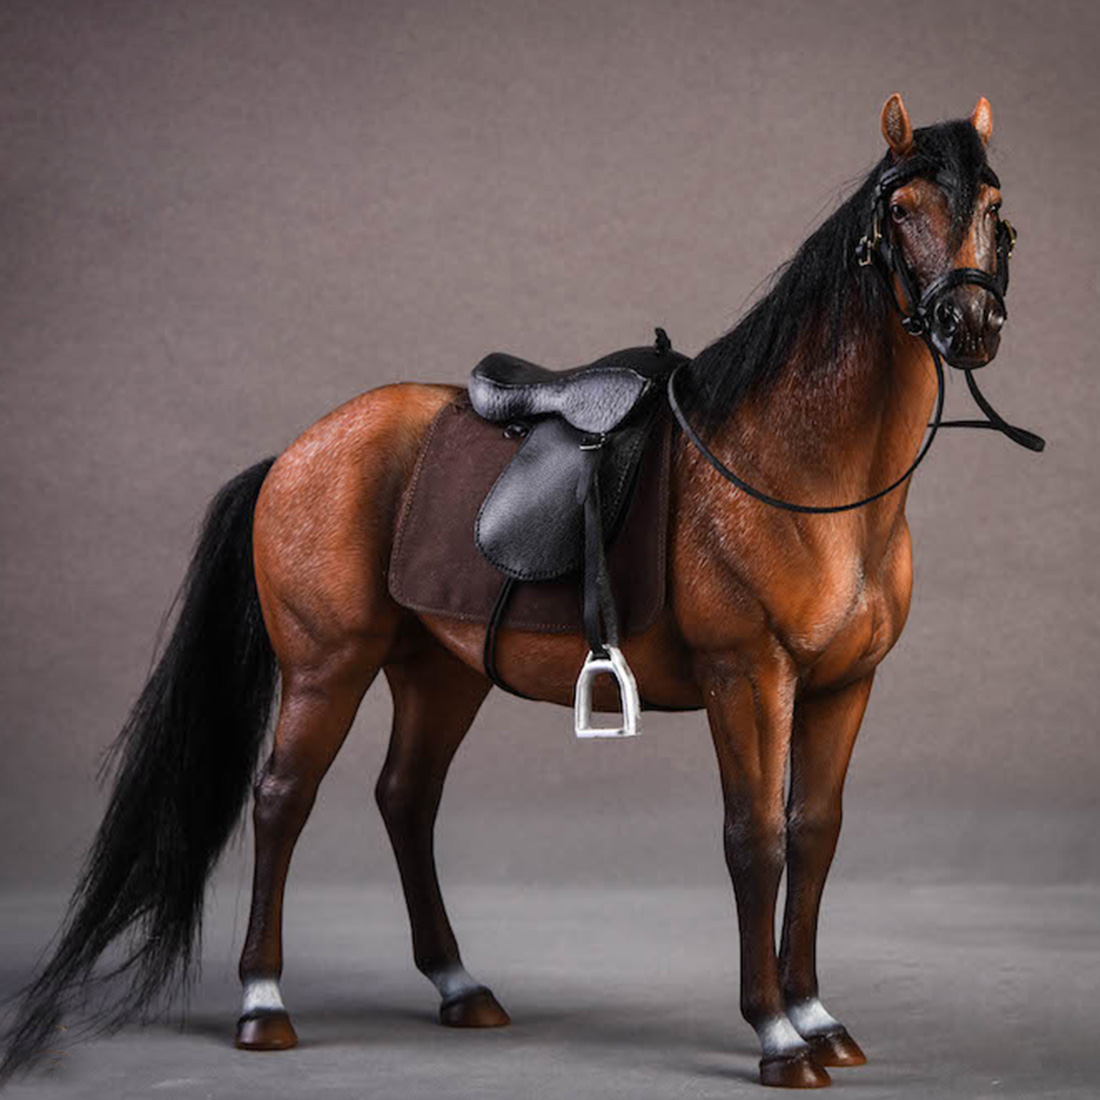 NFSTRIKE 20cm 1/12 Scale Germany Hannover Warm Blooded Model Horse Decoration Scale Model Accessories - Light Brown